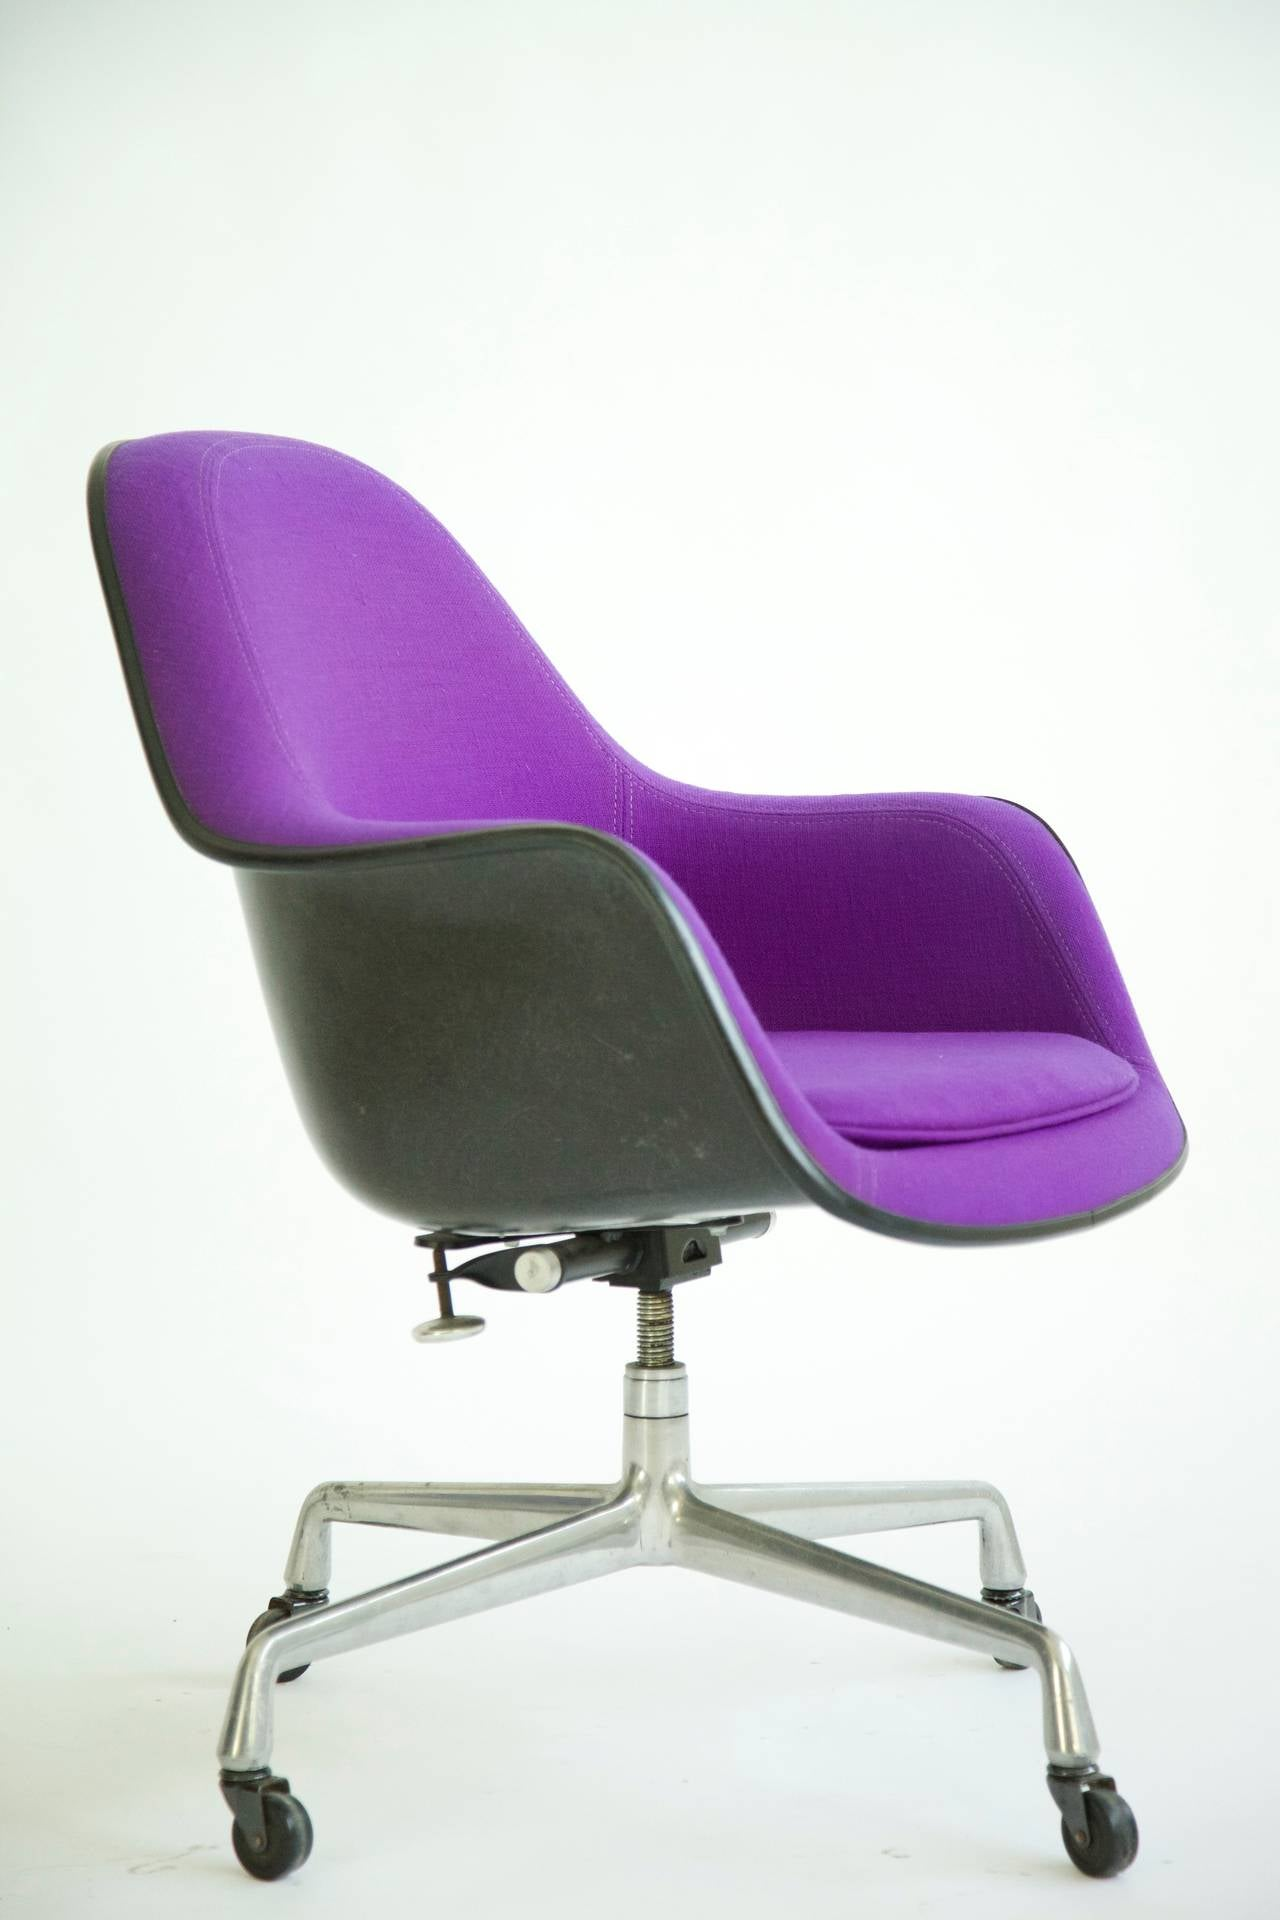 Charles eames loose cushion armchair at 1stdibs for Eames coussin